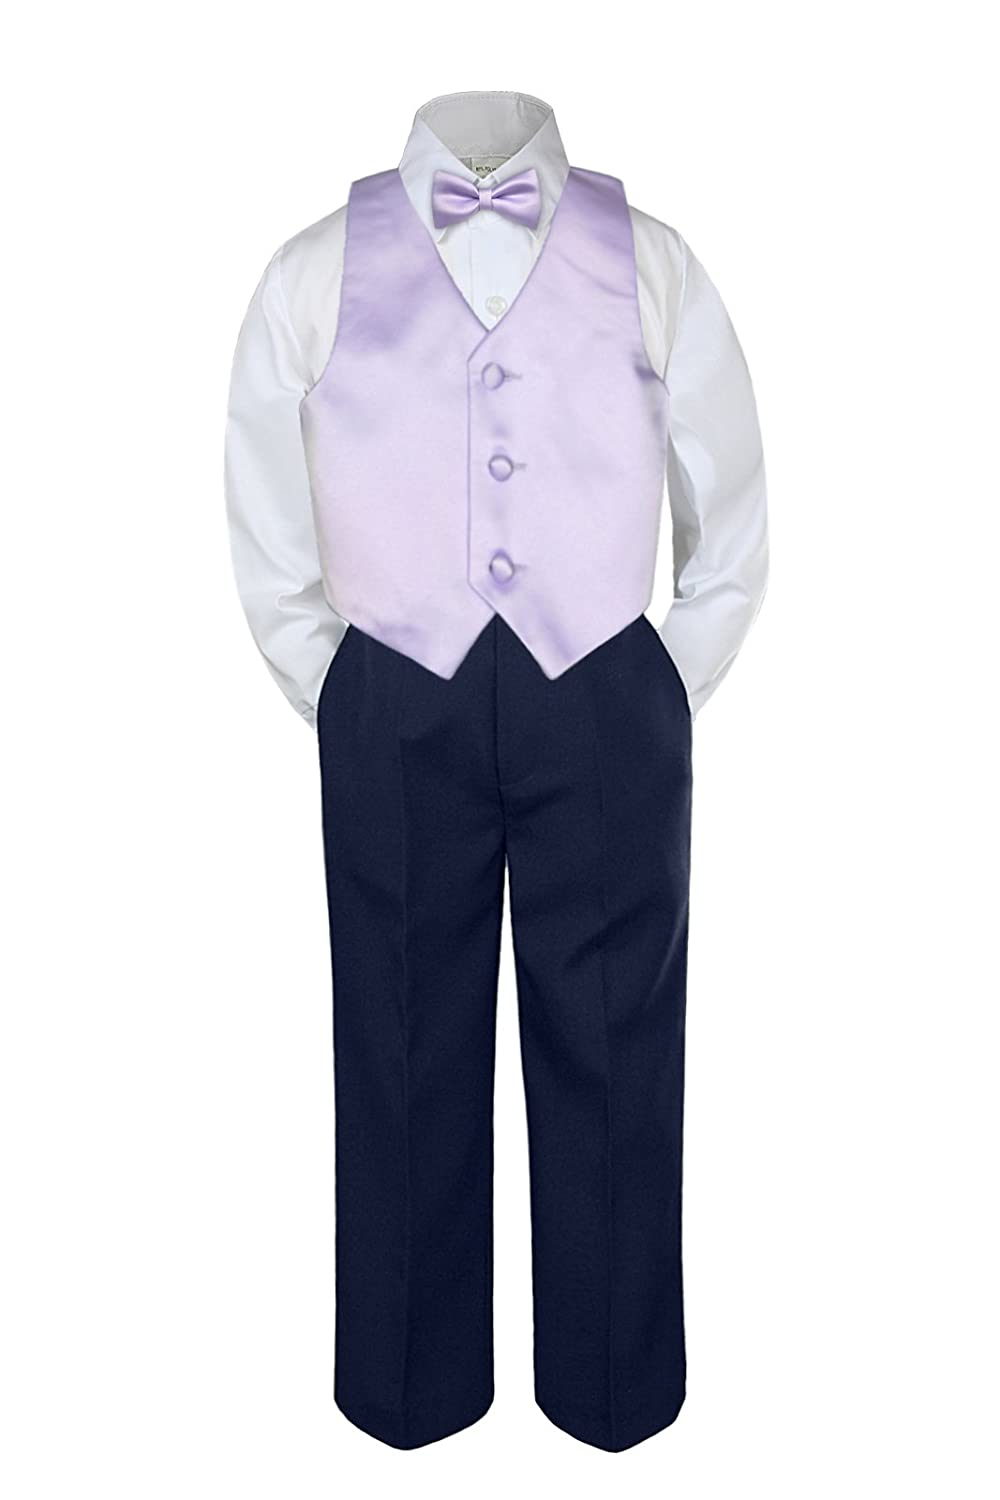 6-12 months Leadertux 4pc Baby Toddler Boy Yellow Vest Bow Tie Navy Blue Pants Suits Set S-7 M: